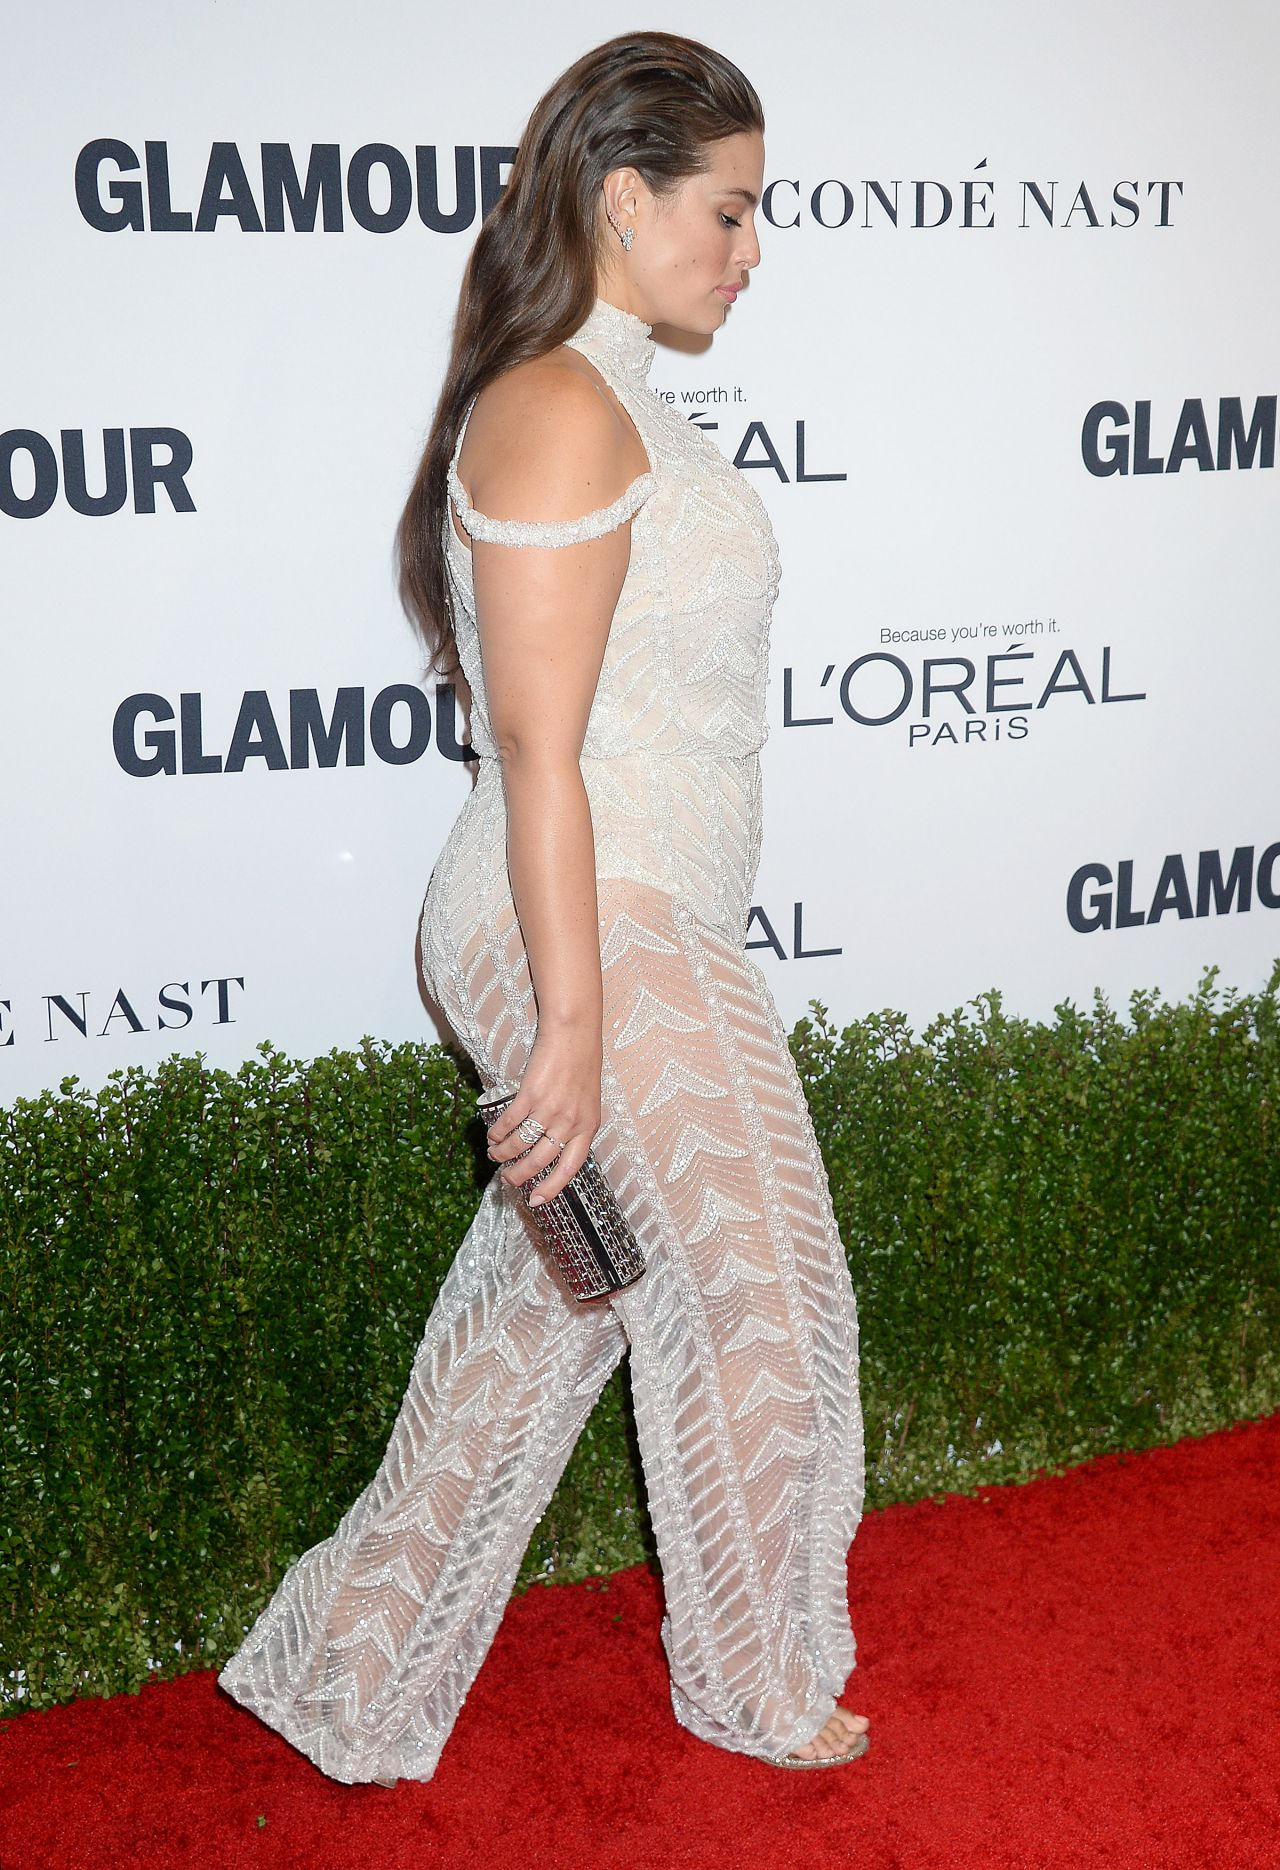 8a4ce5d0d22 Ashley Graham – Glamour Women Of The Year Awards in Los Angeles 11 14  2016